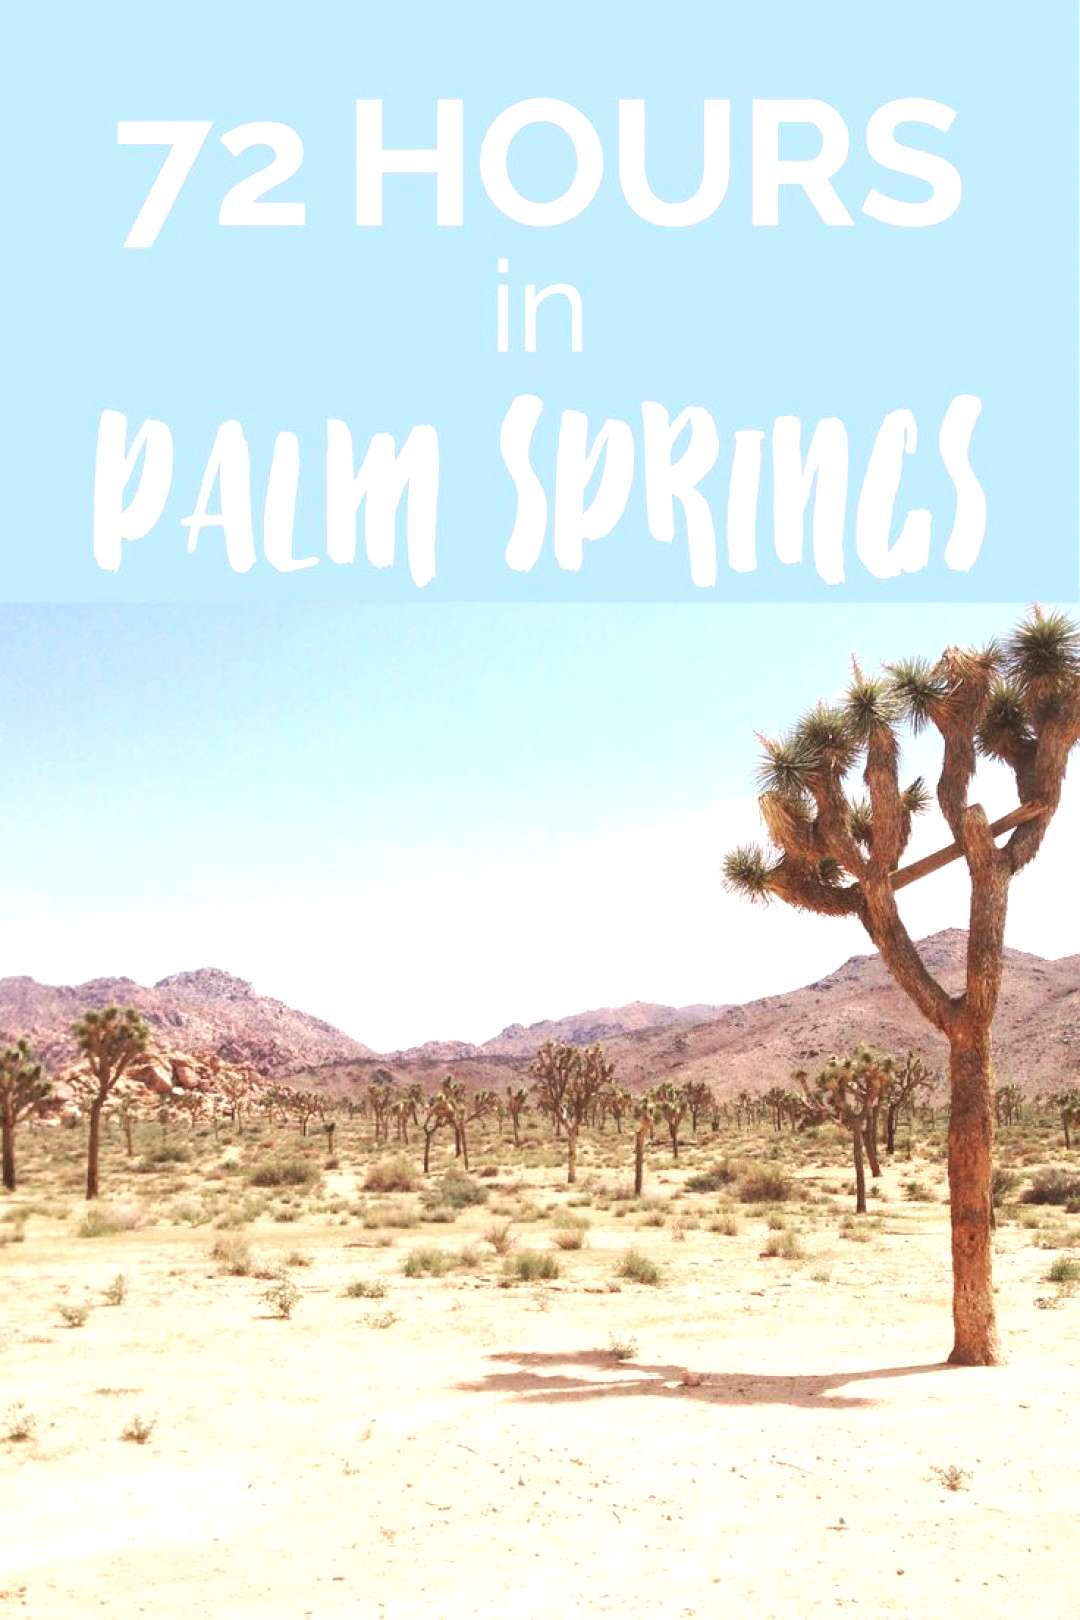 72 Hours in Palm Springs   What Do, See + Eat   